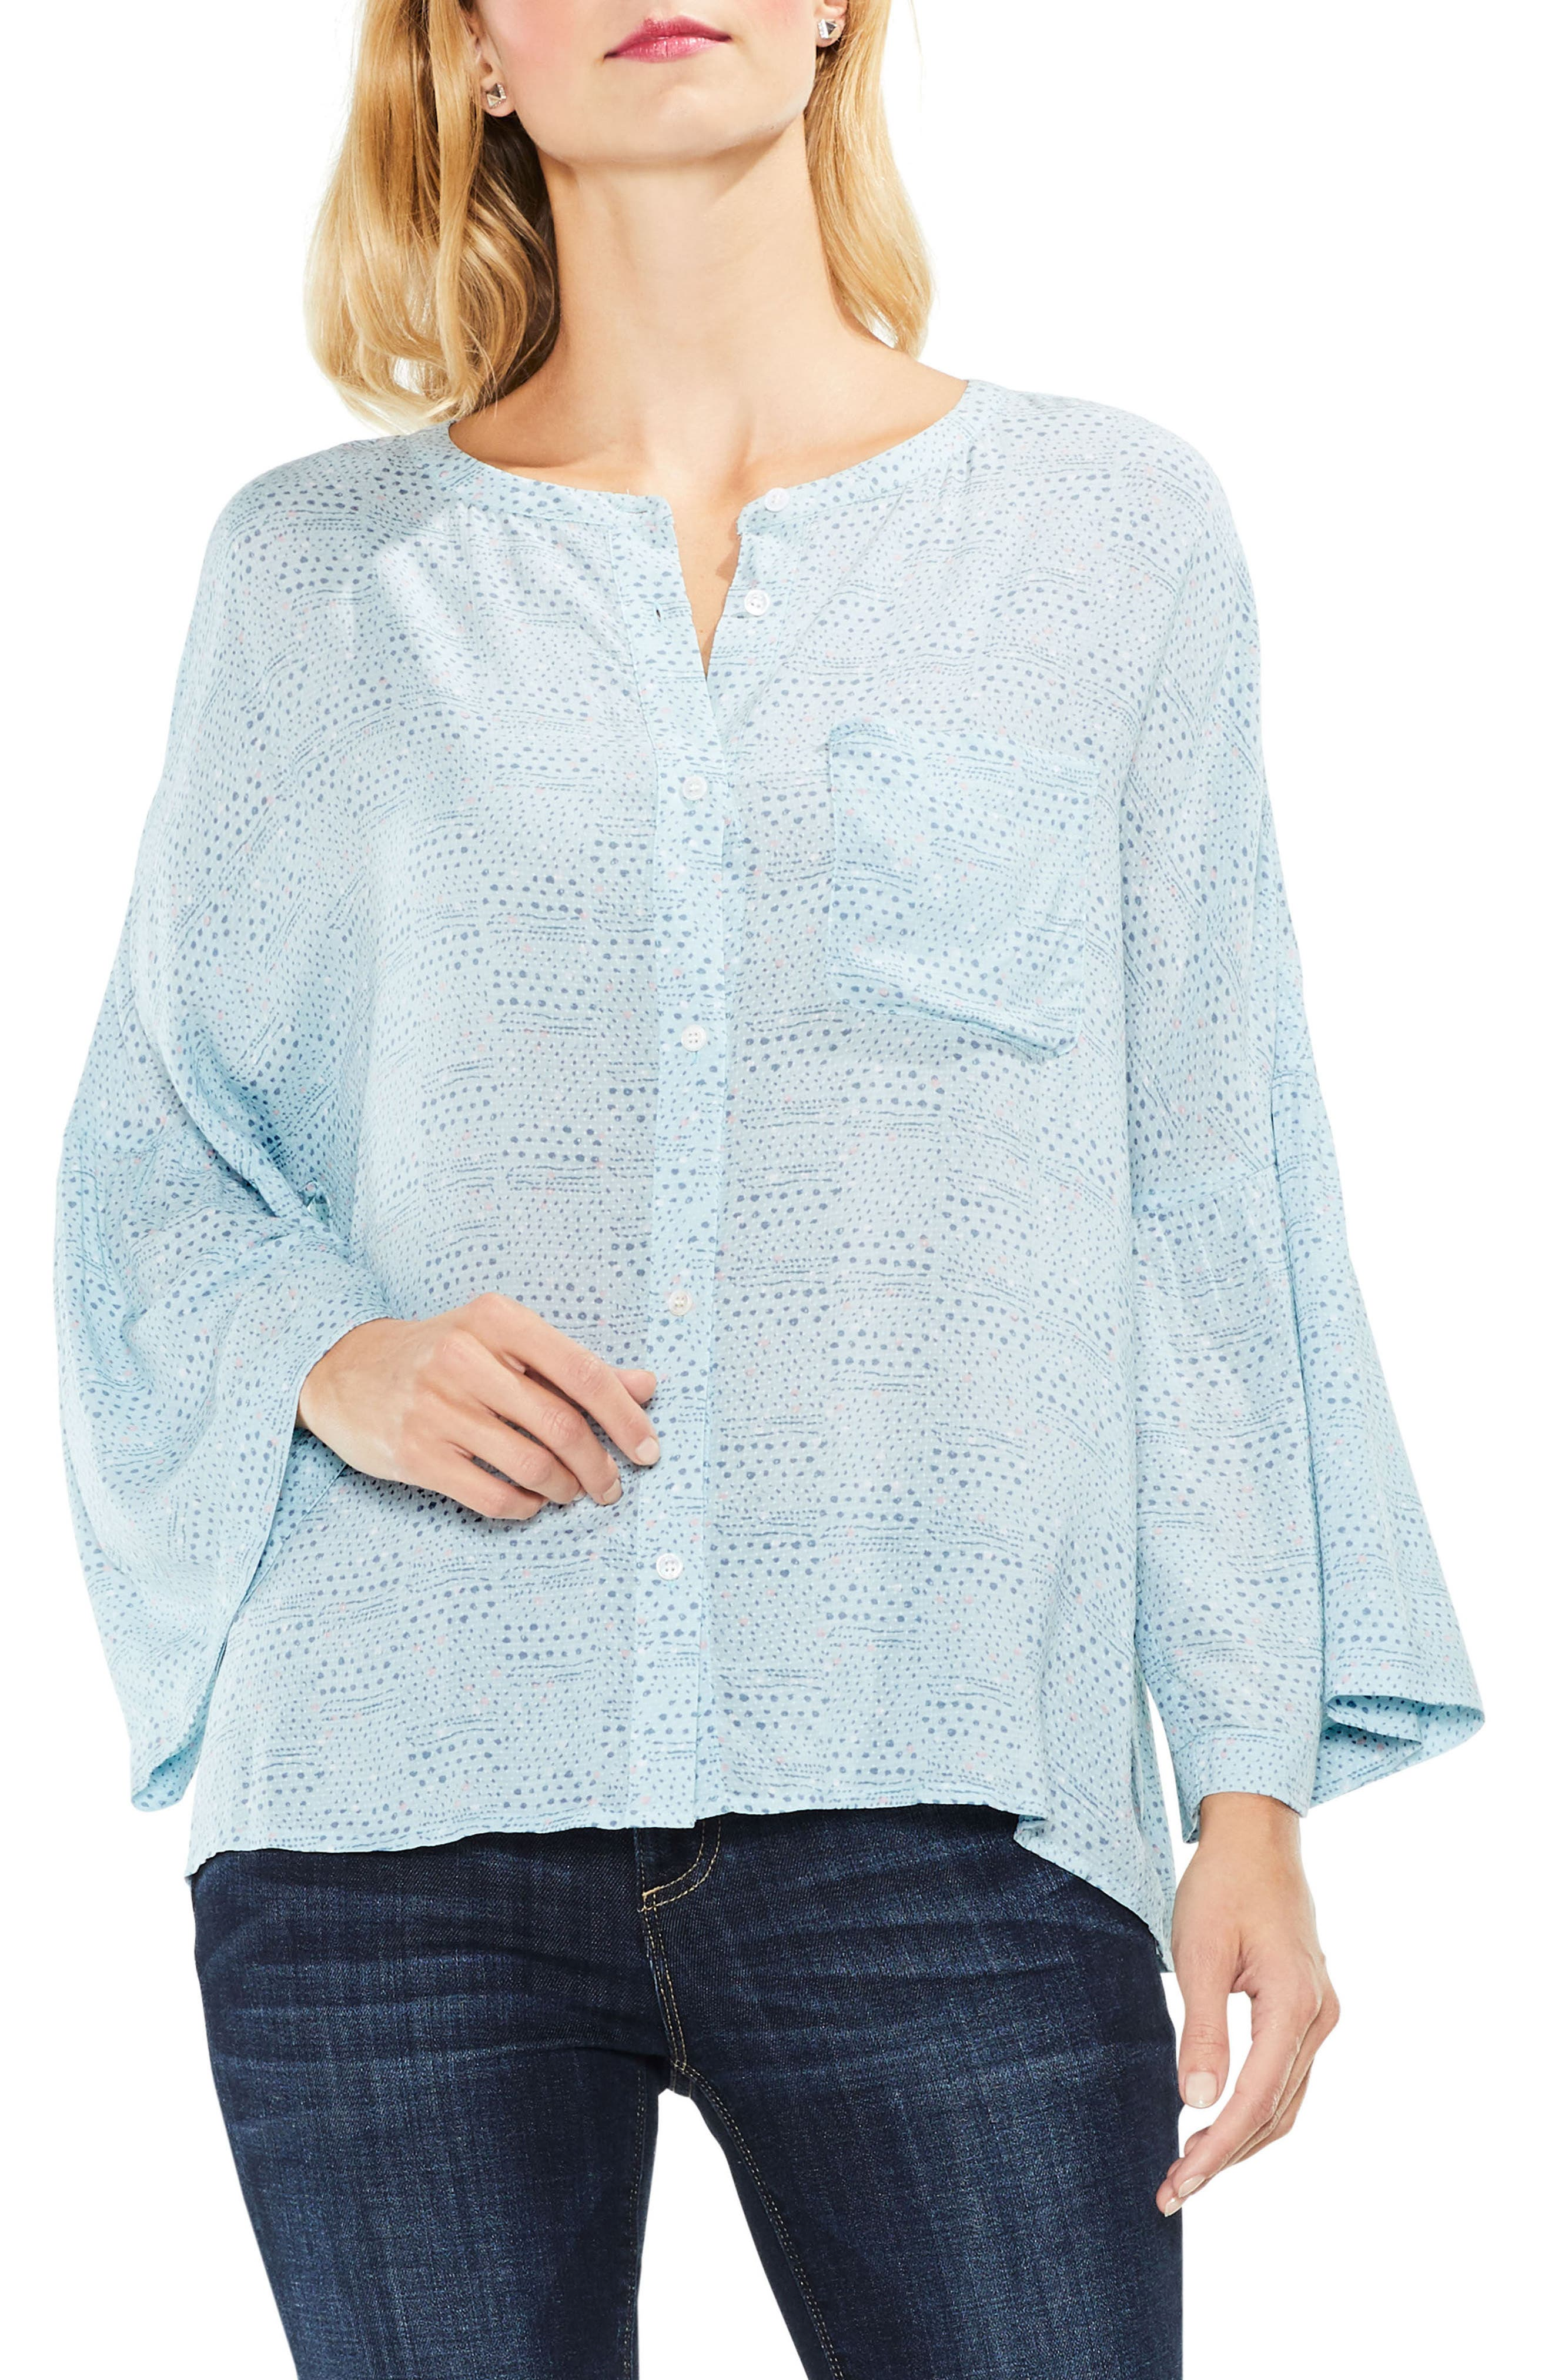 Alternate Image 1 Selected - Two by Vince Camuto Bell Sleeve Geo Dialogue Top